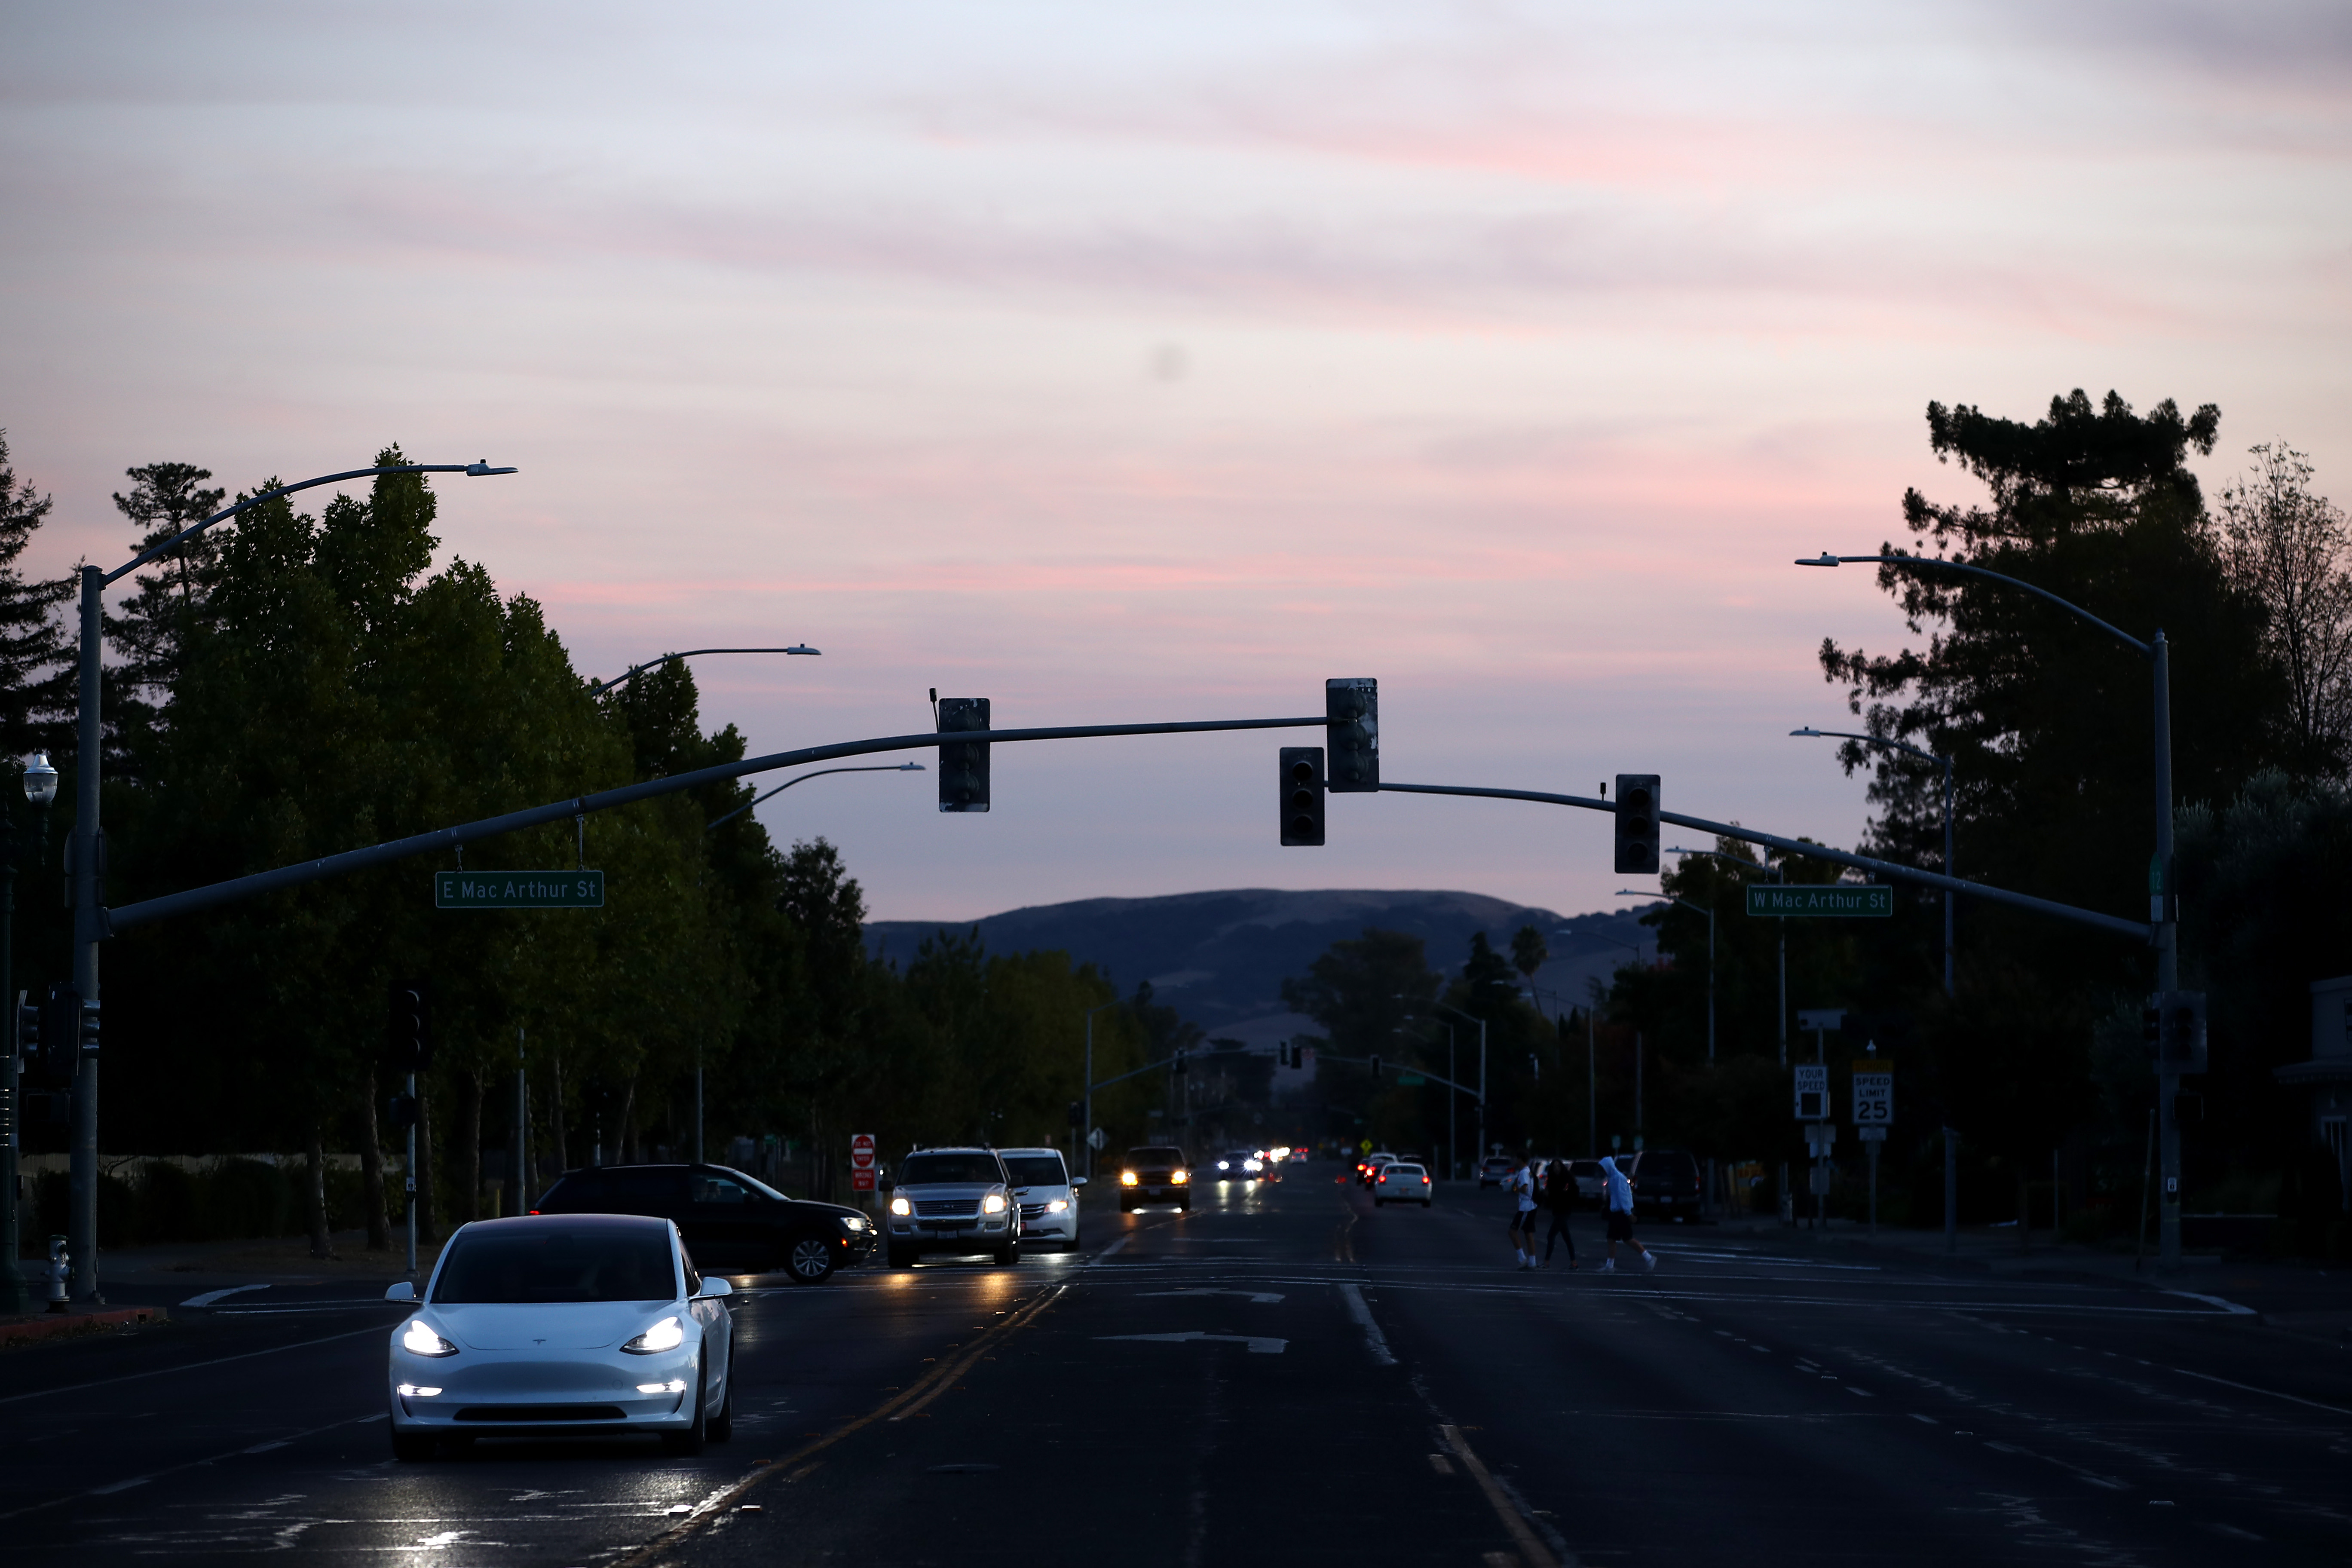 PG&E leaves more than 300,000 homes still without power